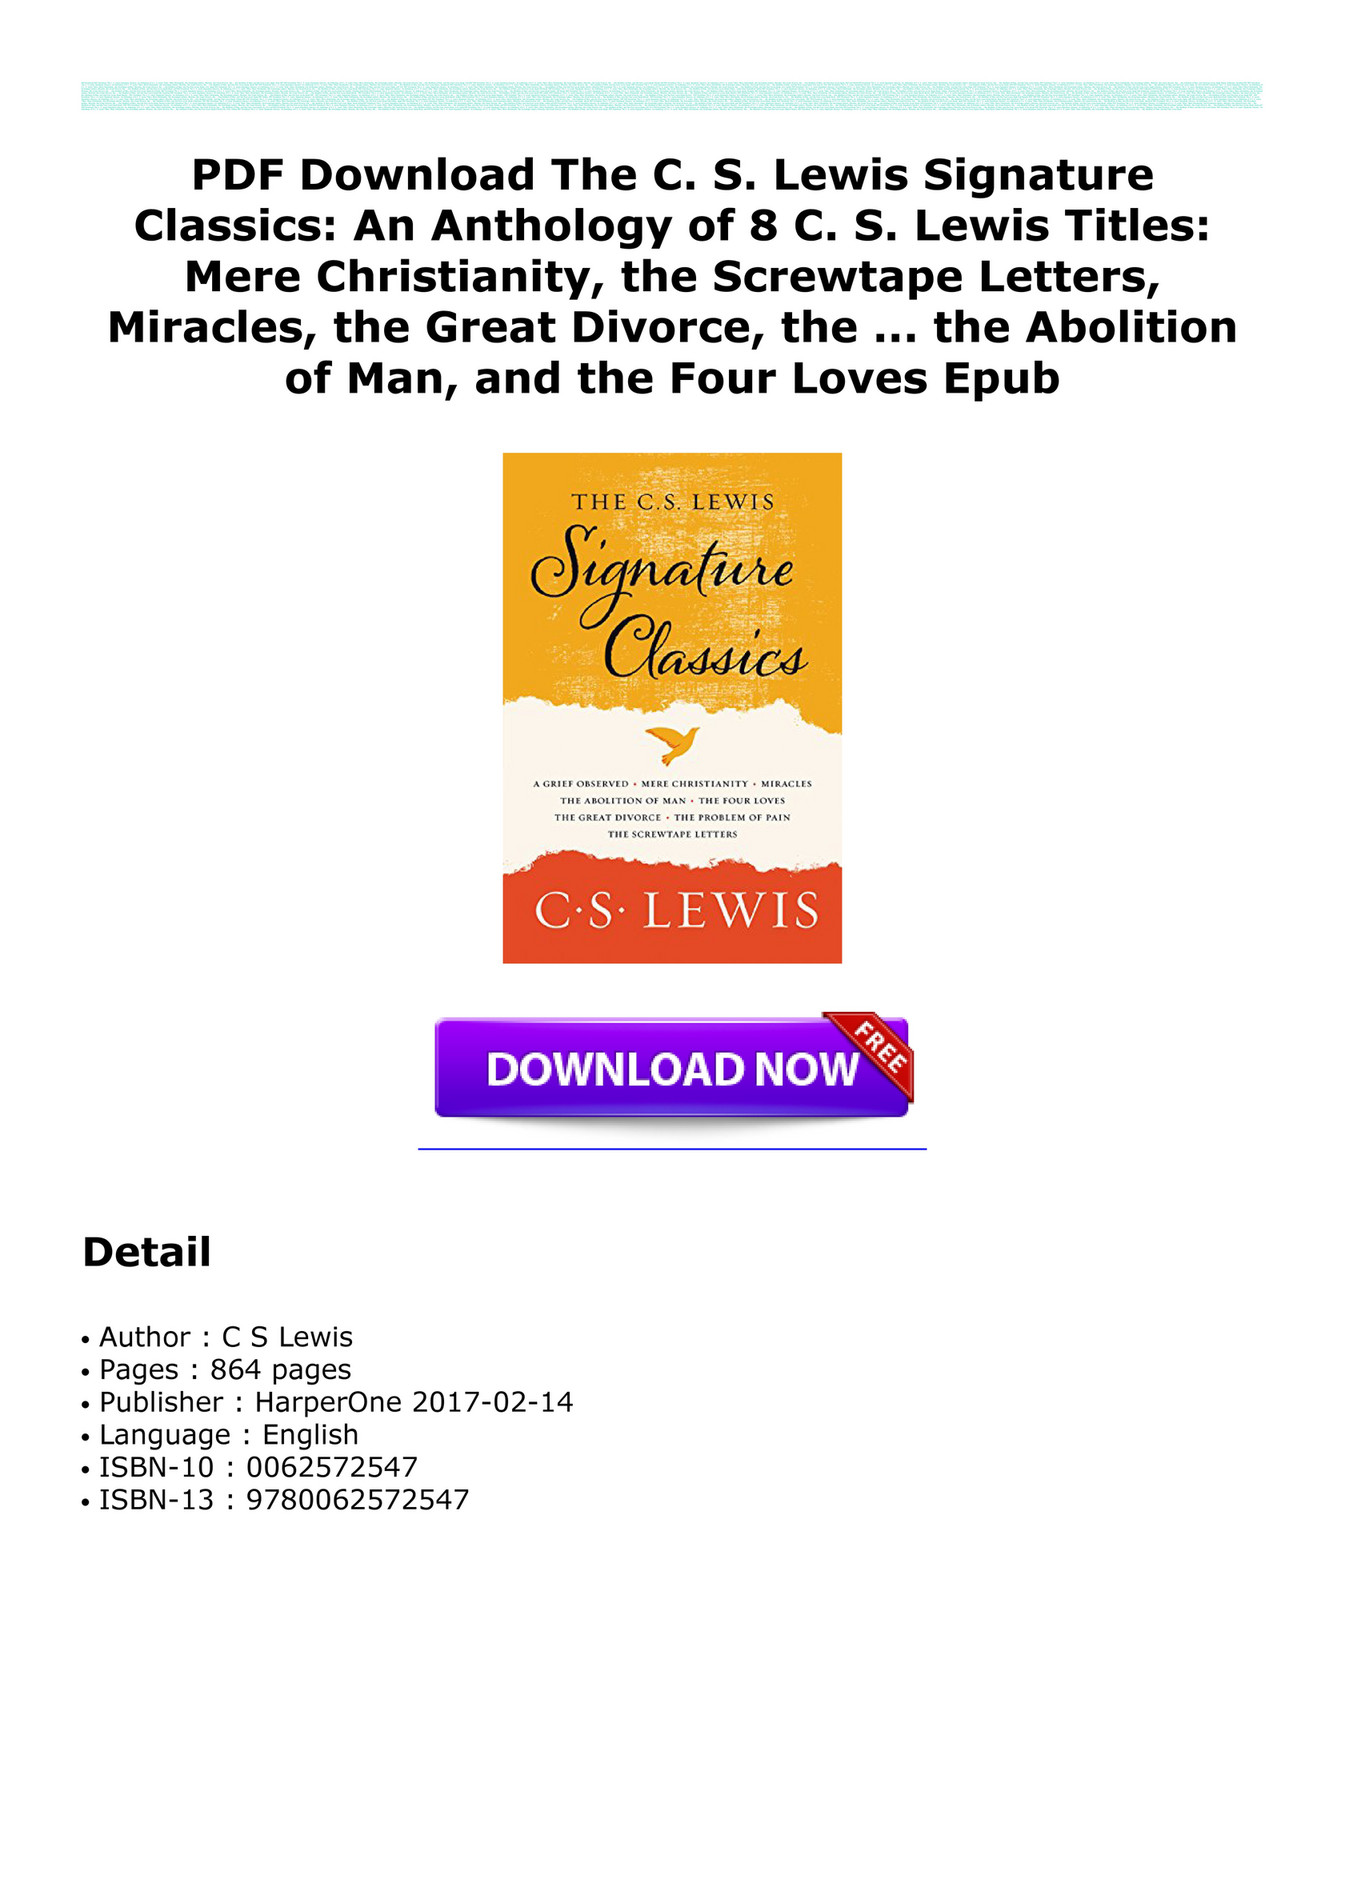 hastings pdf download the c s lewis signature classics an anthology of 8 c s lewis titles mere christianity the screwtape letters miracles